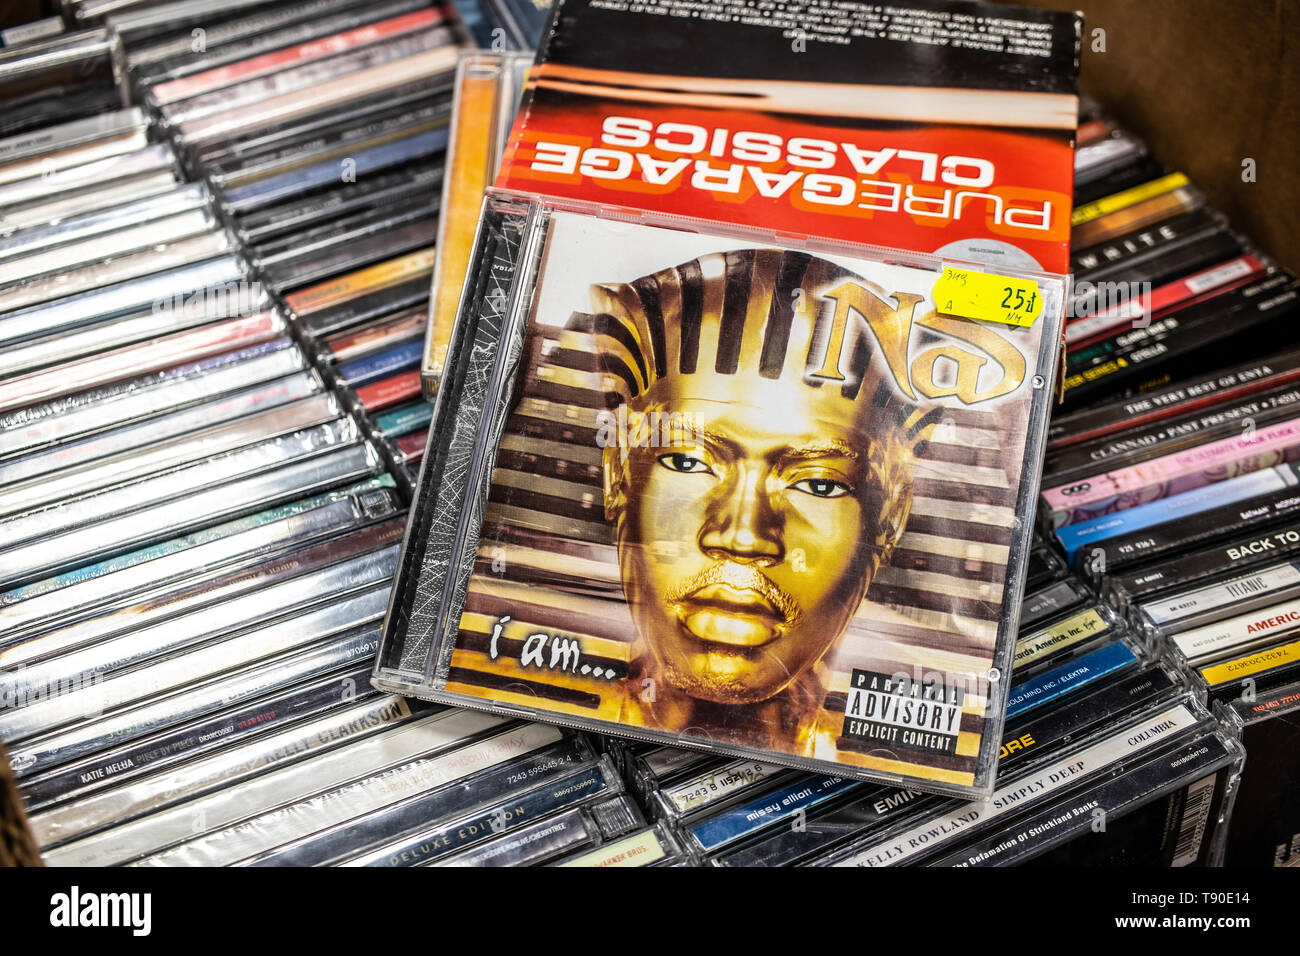 Nadarzyn, Poland, May 11, 2019: Nas CD album I Am... 1999 on display for sale, famous American rapper, songwriter, collection of CD music albums - Stock Image